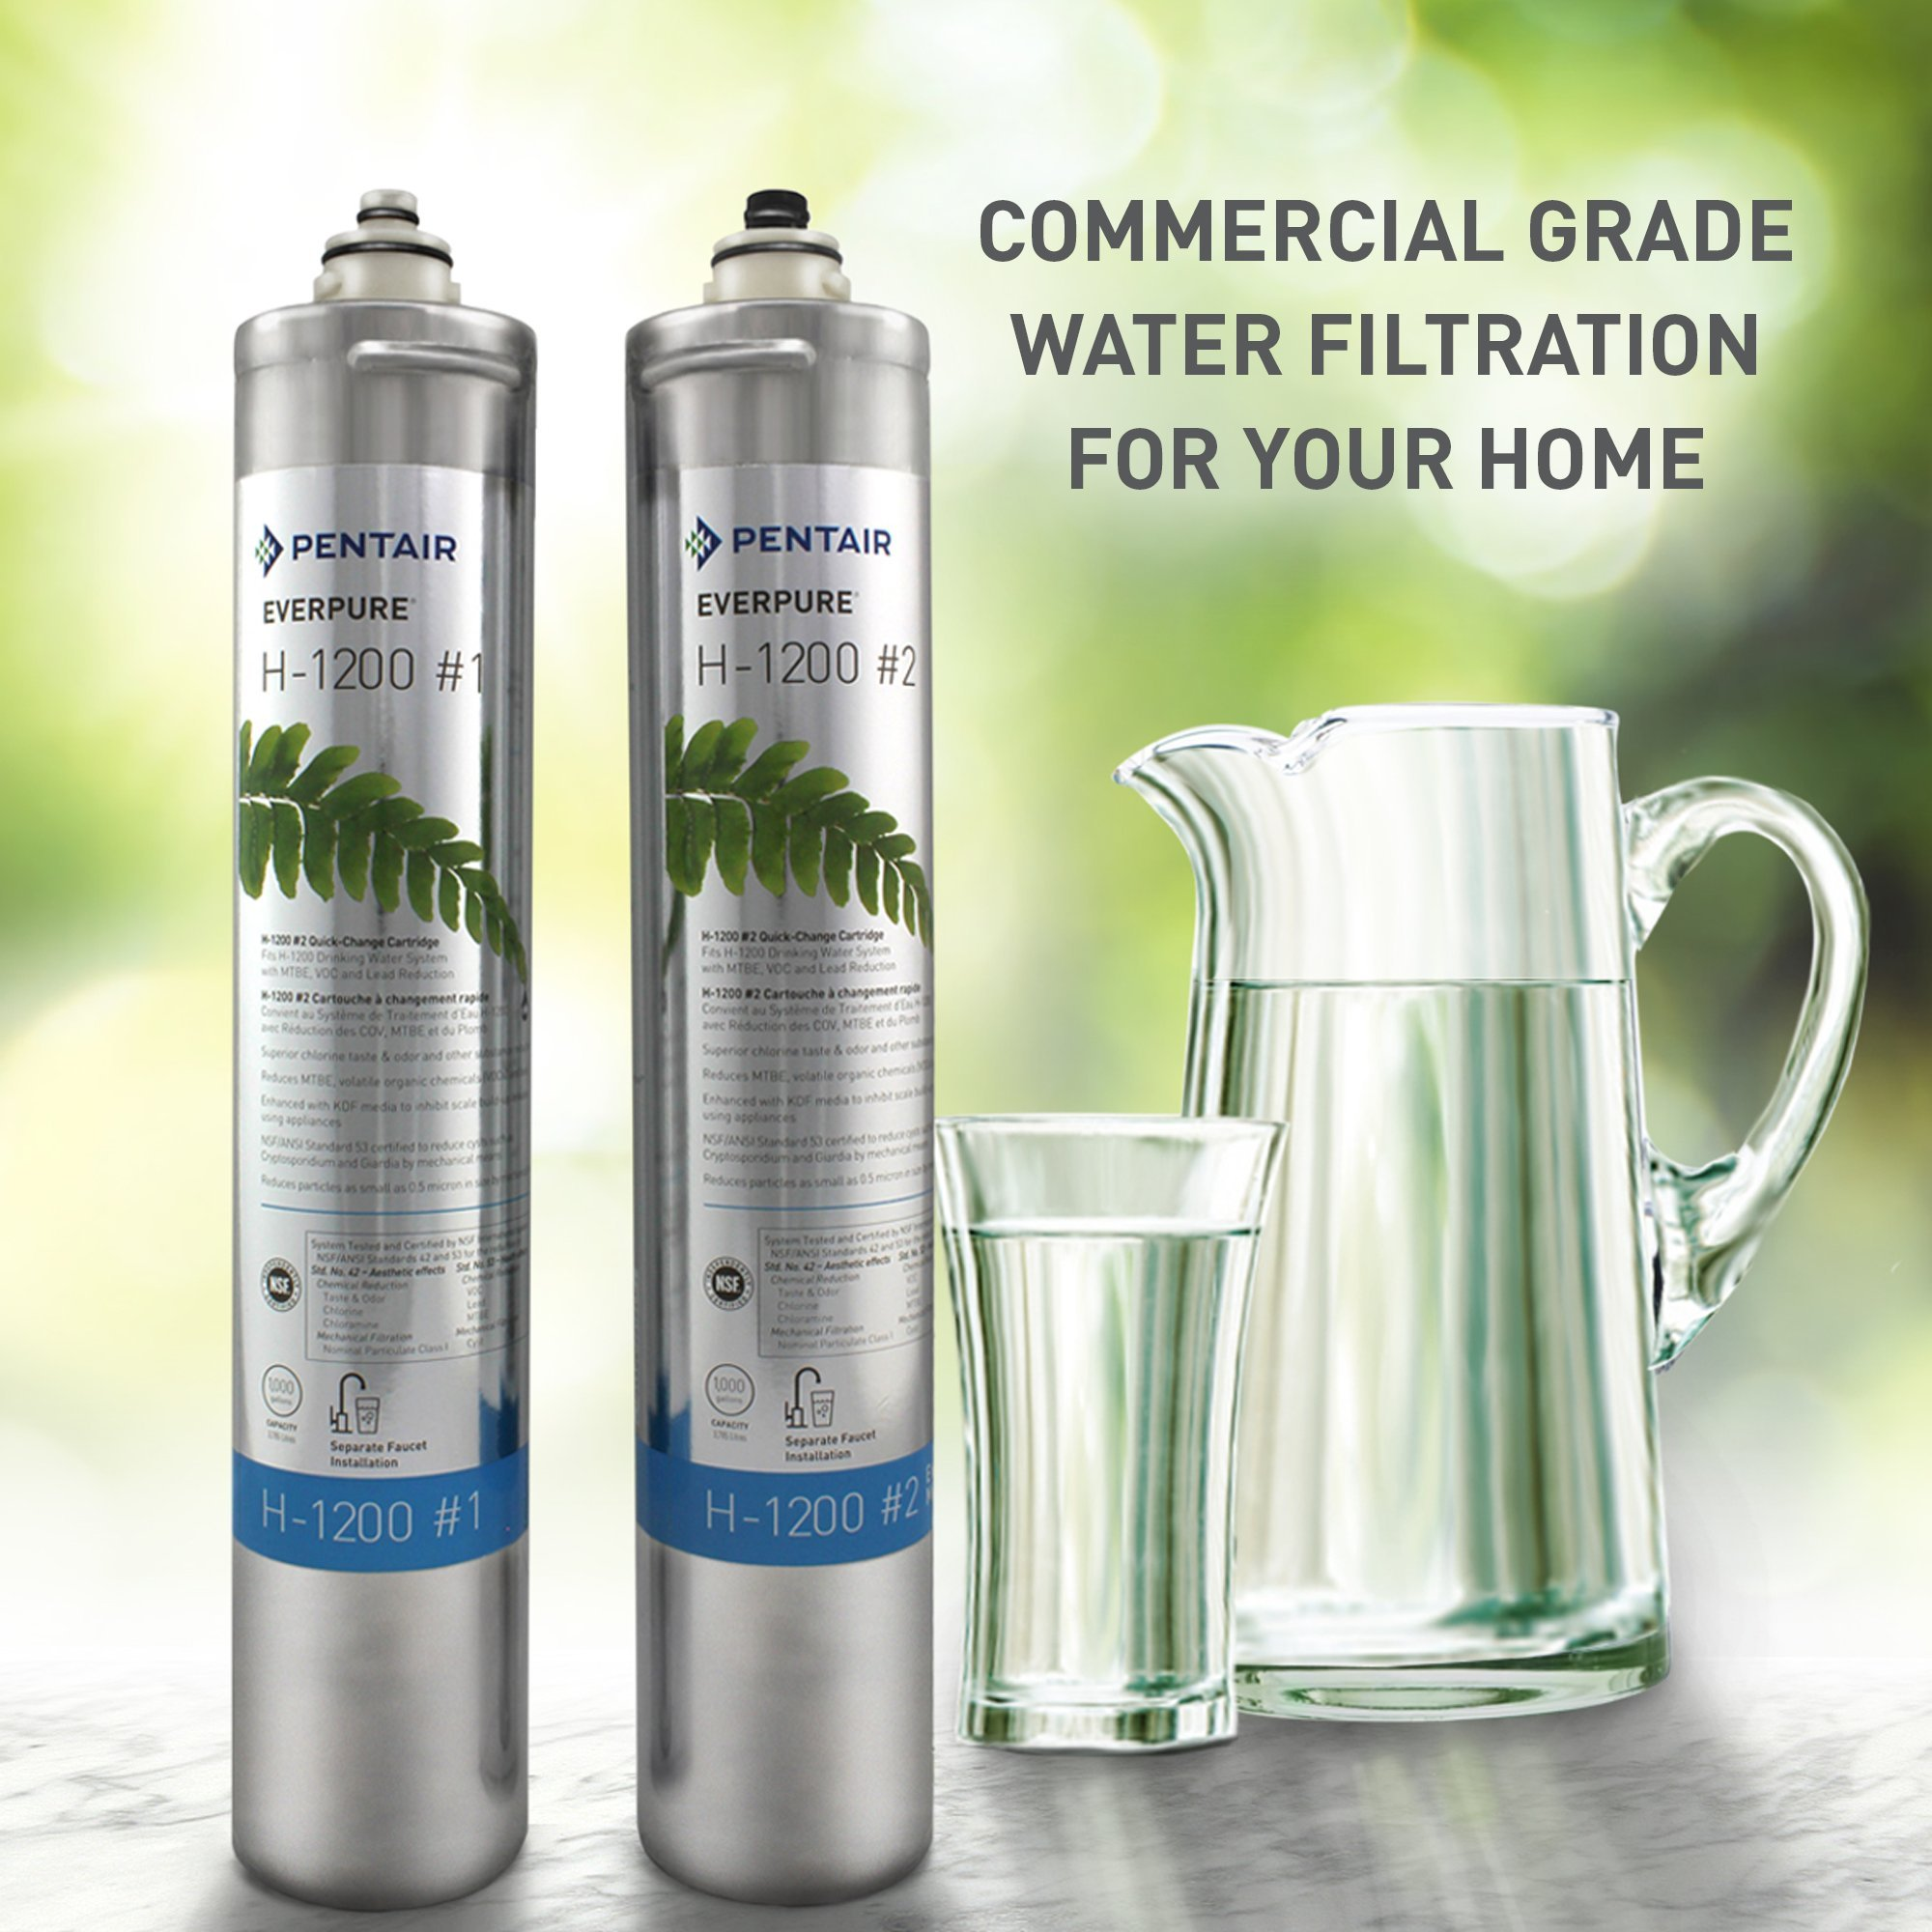 Everpure H-1200 Water Filter Replacement Cartridge Set (EV9282-01) by Everpure (Image #4)